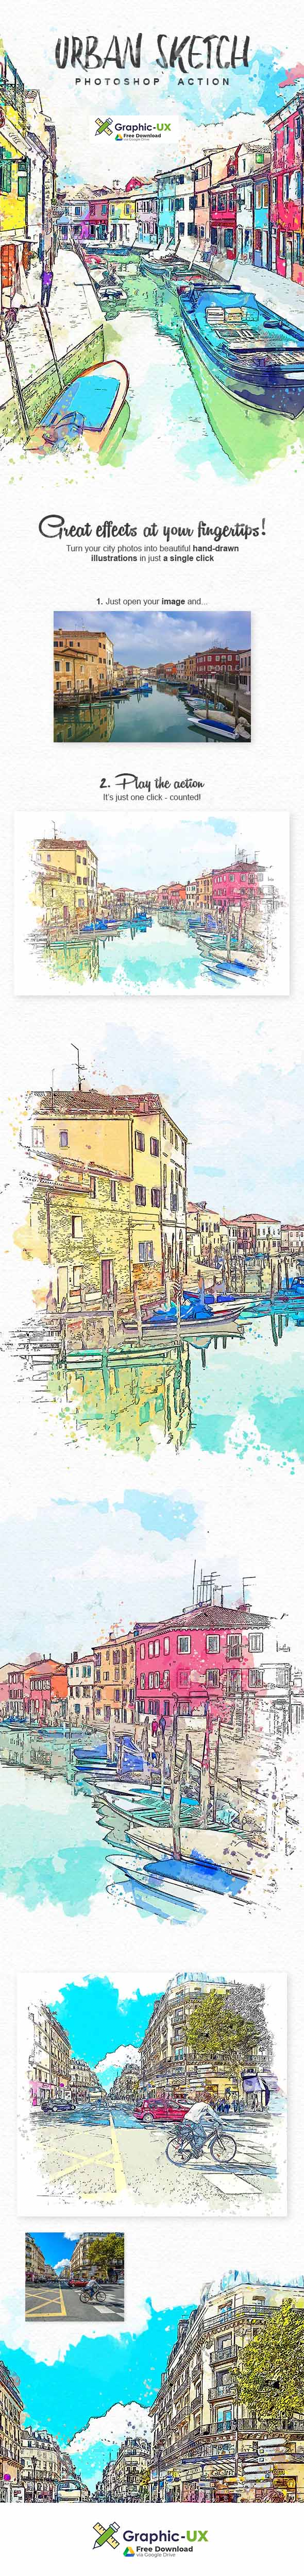 Urban Sketch Photoshop Action free download – GraphicUX